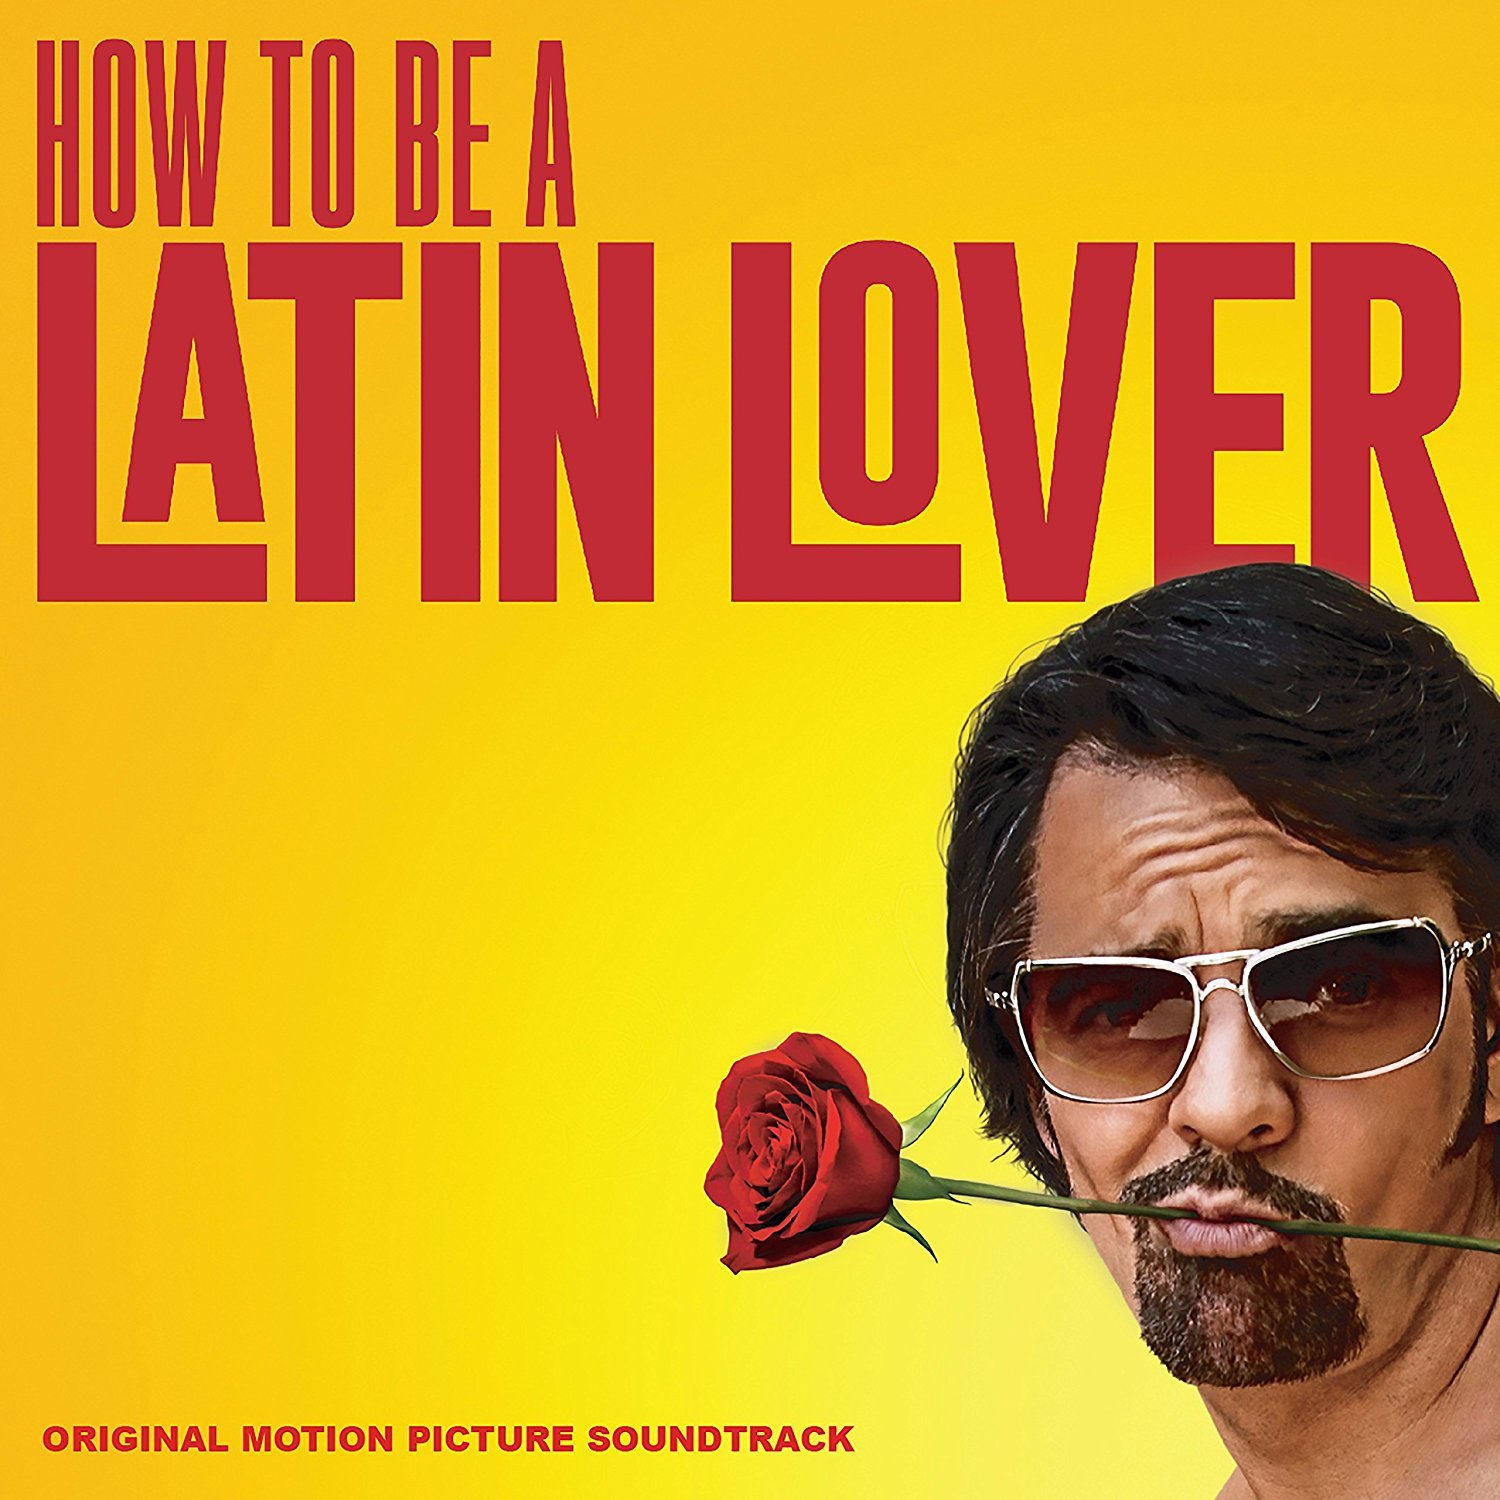 Movie review how to be a latin lover a hilarious romp movie review how to be a latin lover a hilarious romp washington times ccuart Image collections